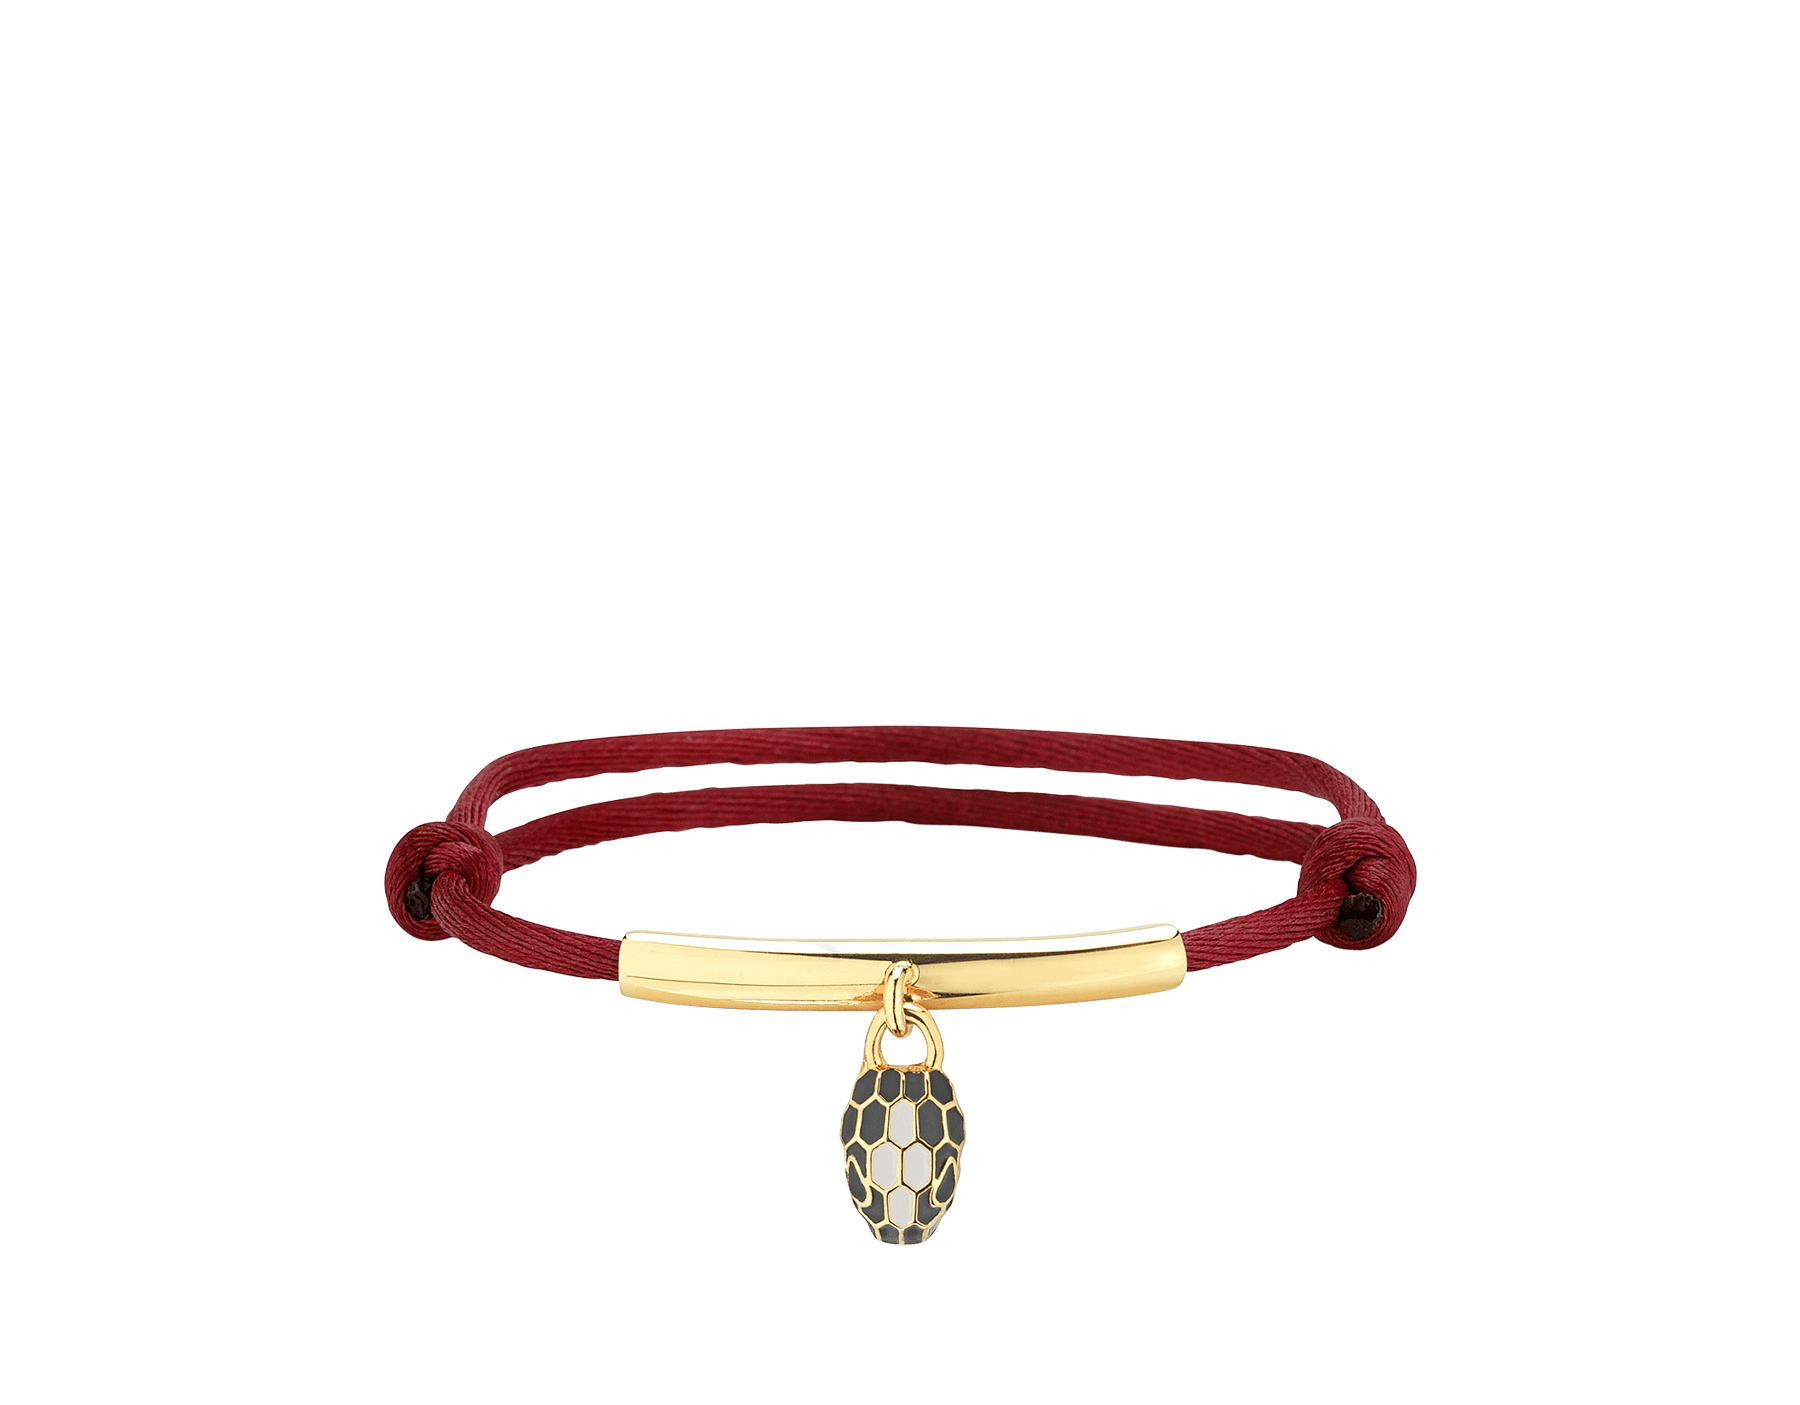 """""""Serpenti Forever"""" bracelet in daisy topaz silk with a palladium plated brass plate and an iconic snakehead charm in black and white agate enamel and black enamel eyes. SERP-MINISTRING image 1"""